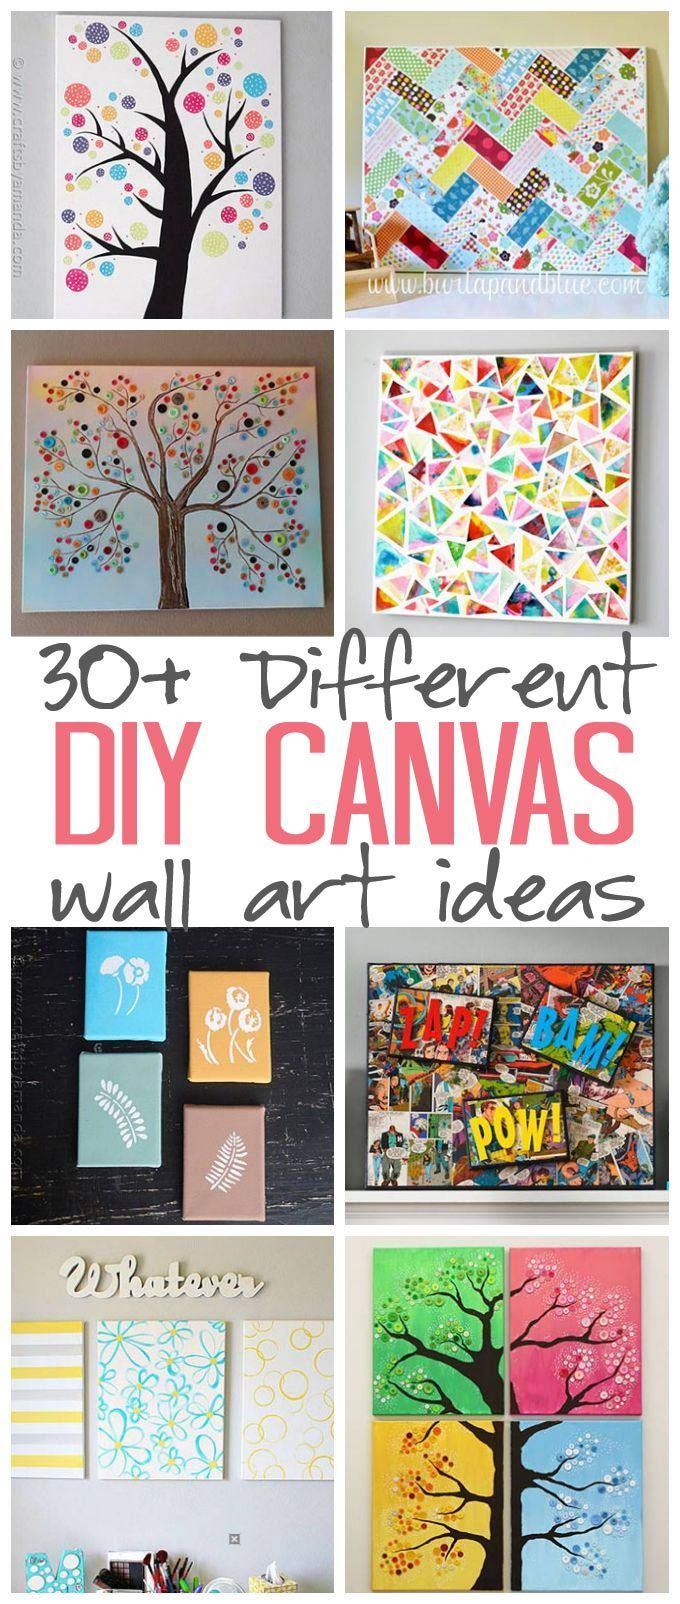 attractive Simple Canvas Paintings For Kids Part - 17: DIY Canvas Wall Art Ideas: 30+ canvas tutorials for adults - great ideas  for your home, office, nursery and craft room! | Getting Crafty u0026 DIY |  Pinterest ...